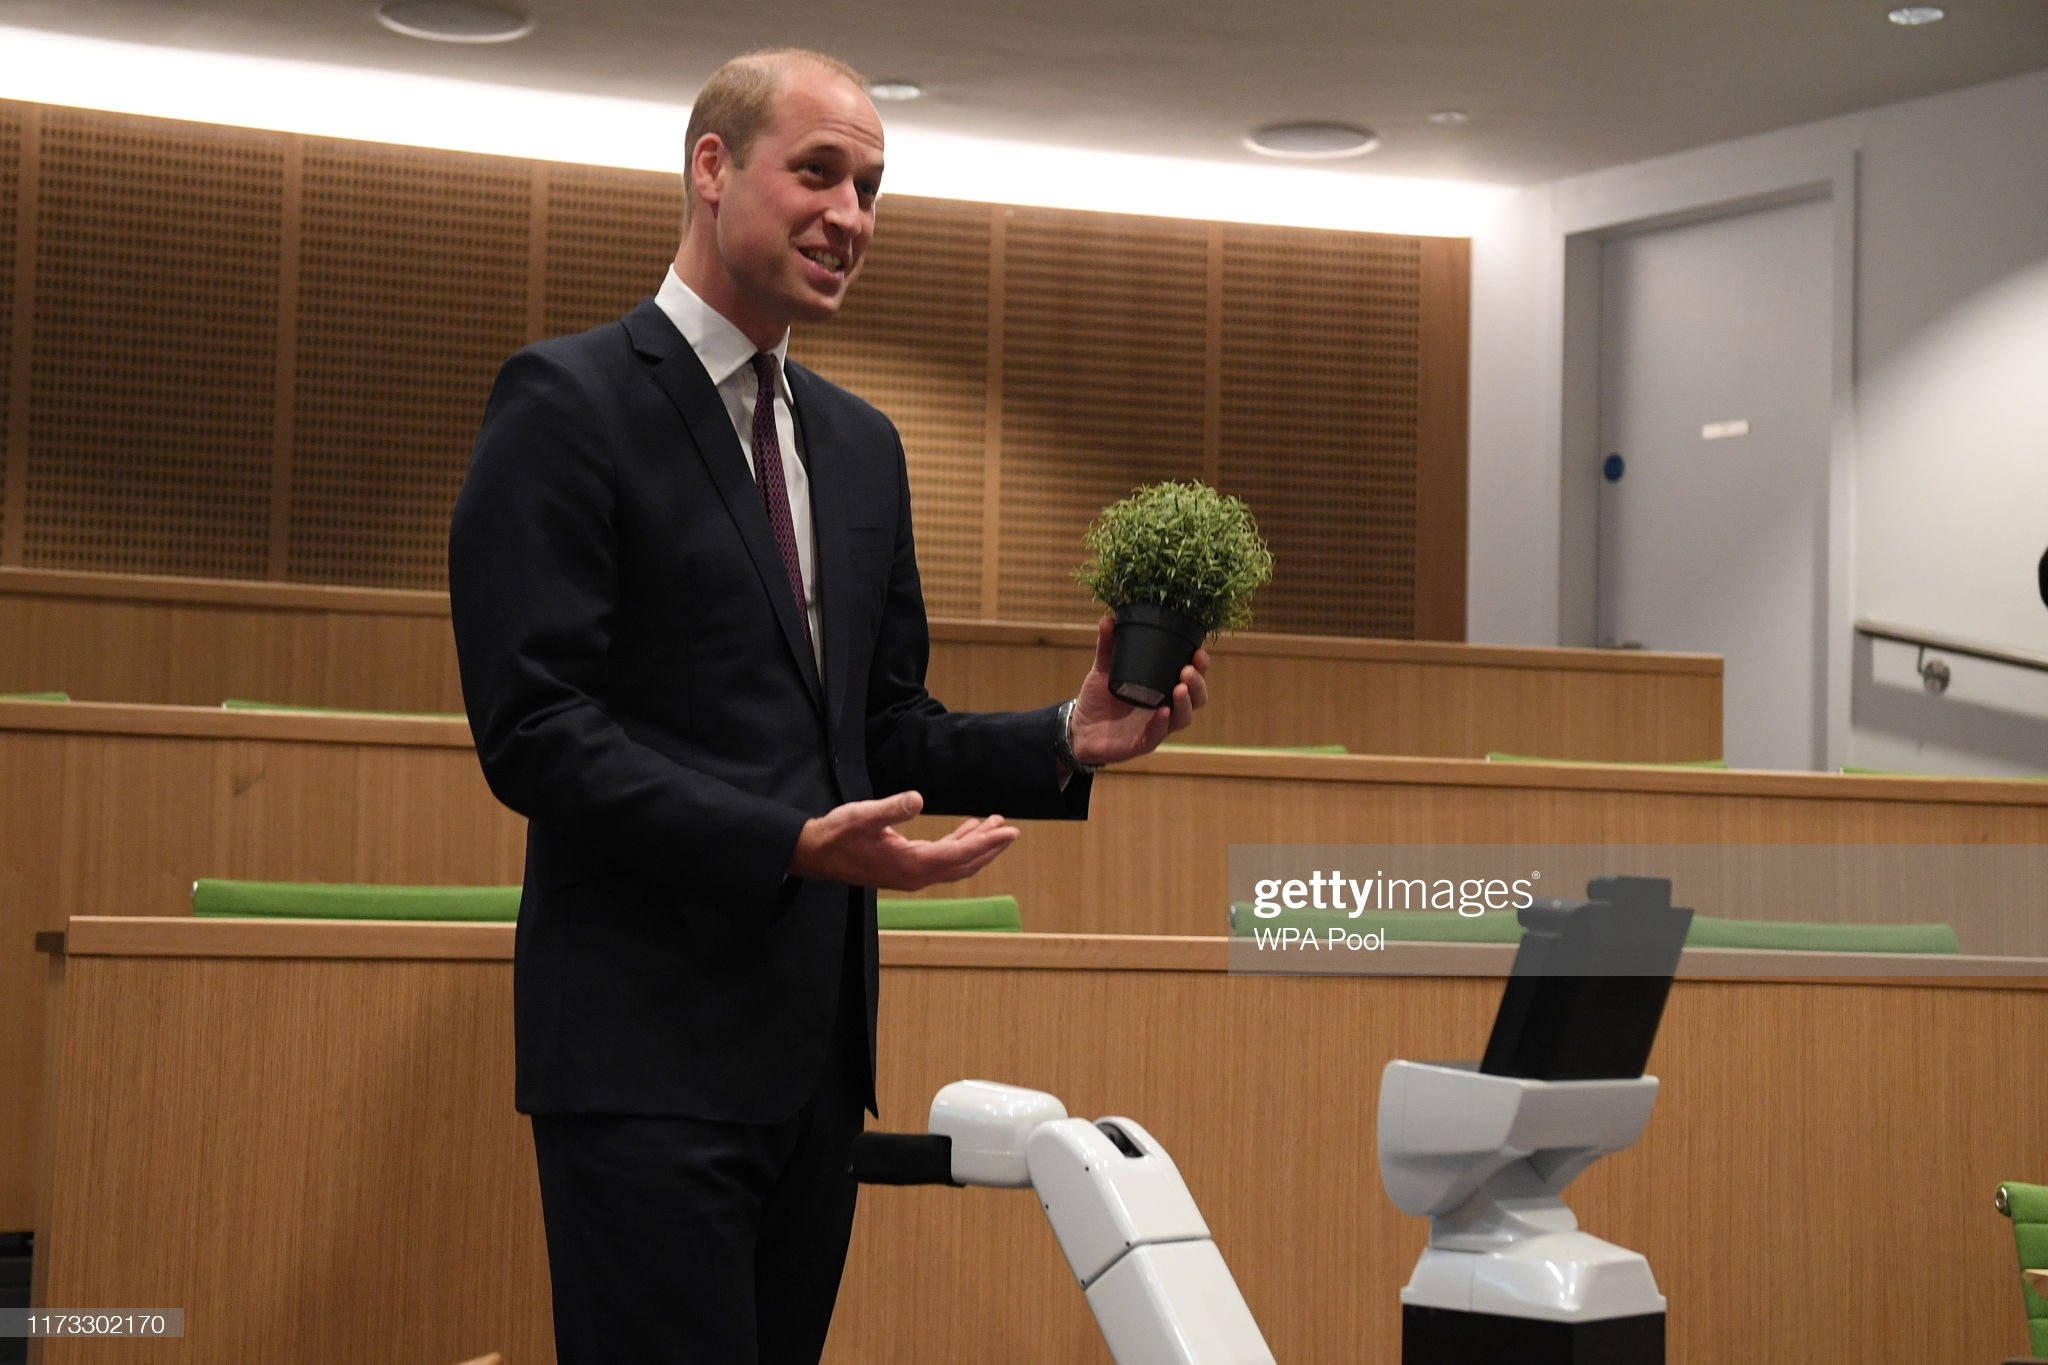 prince-william-duke-of-cambridge-interacts-with-bambam-a-robot-to-picture-id1173302170